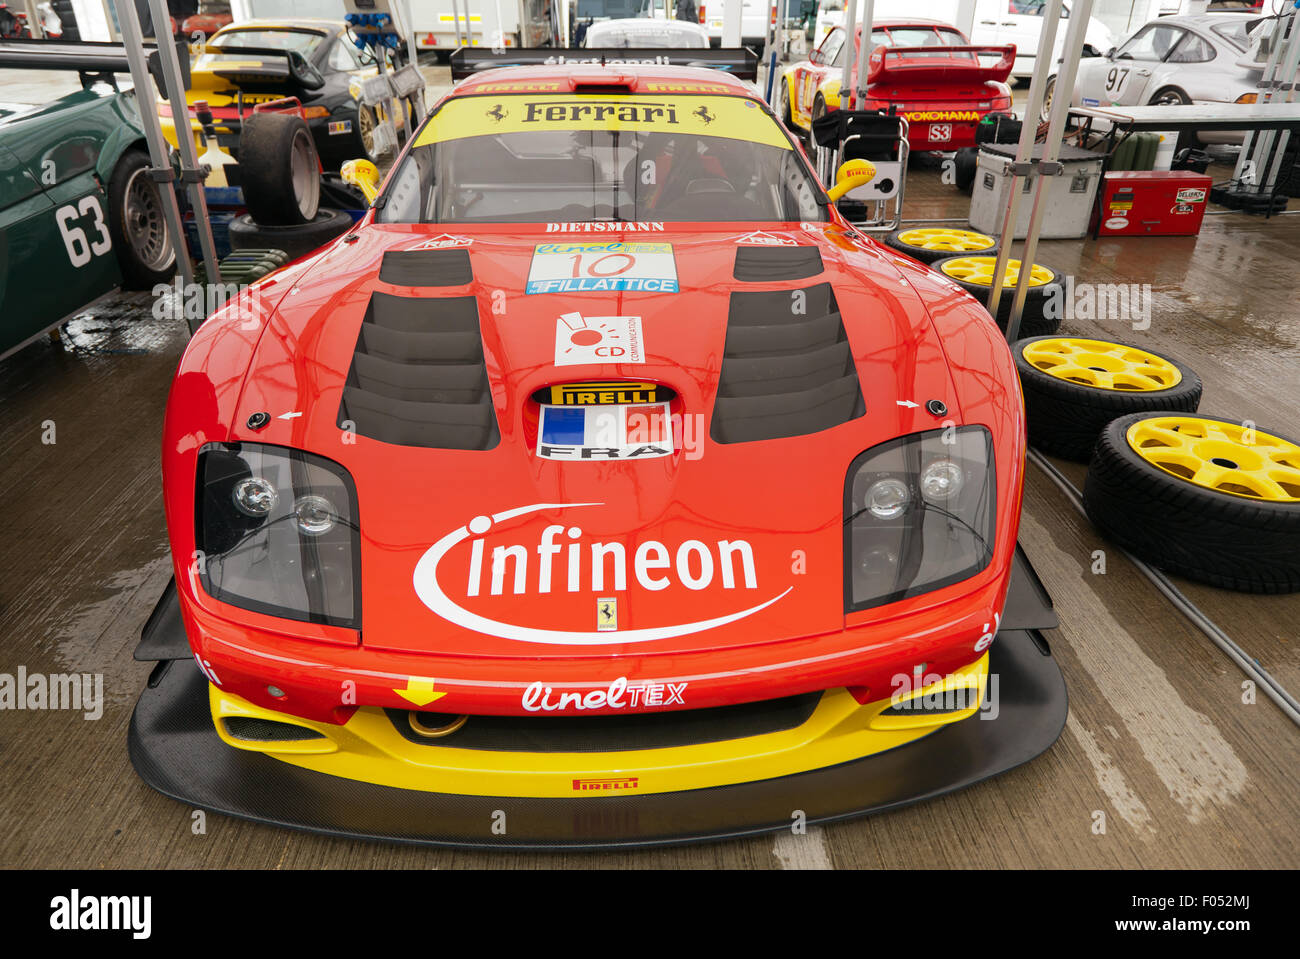 A 2002, Ferrari 575 GTC race car in the National Paddock at the 2015 on